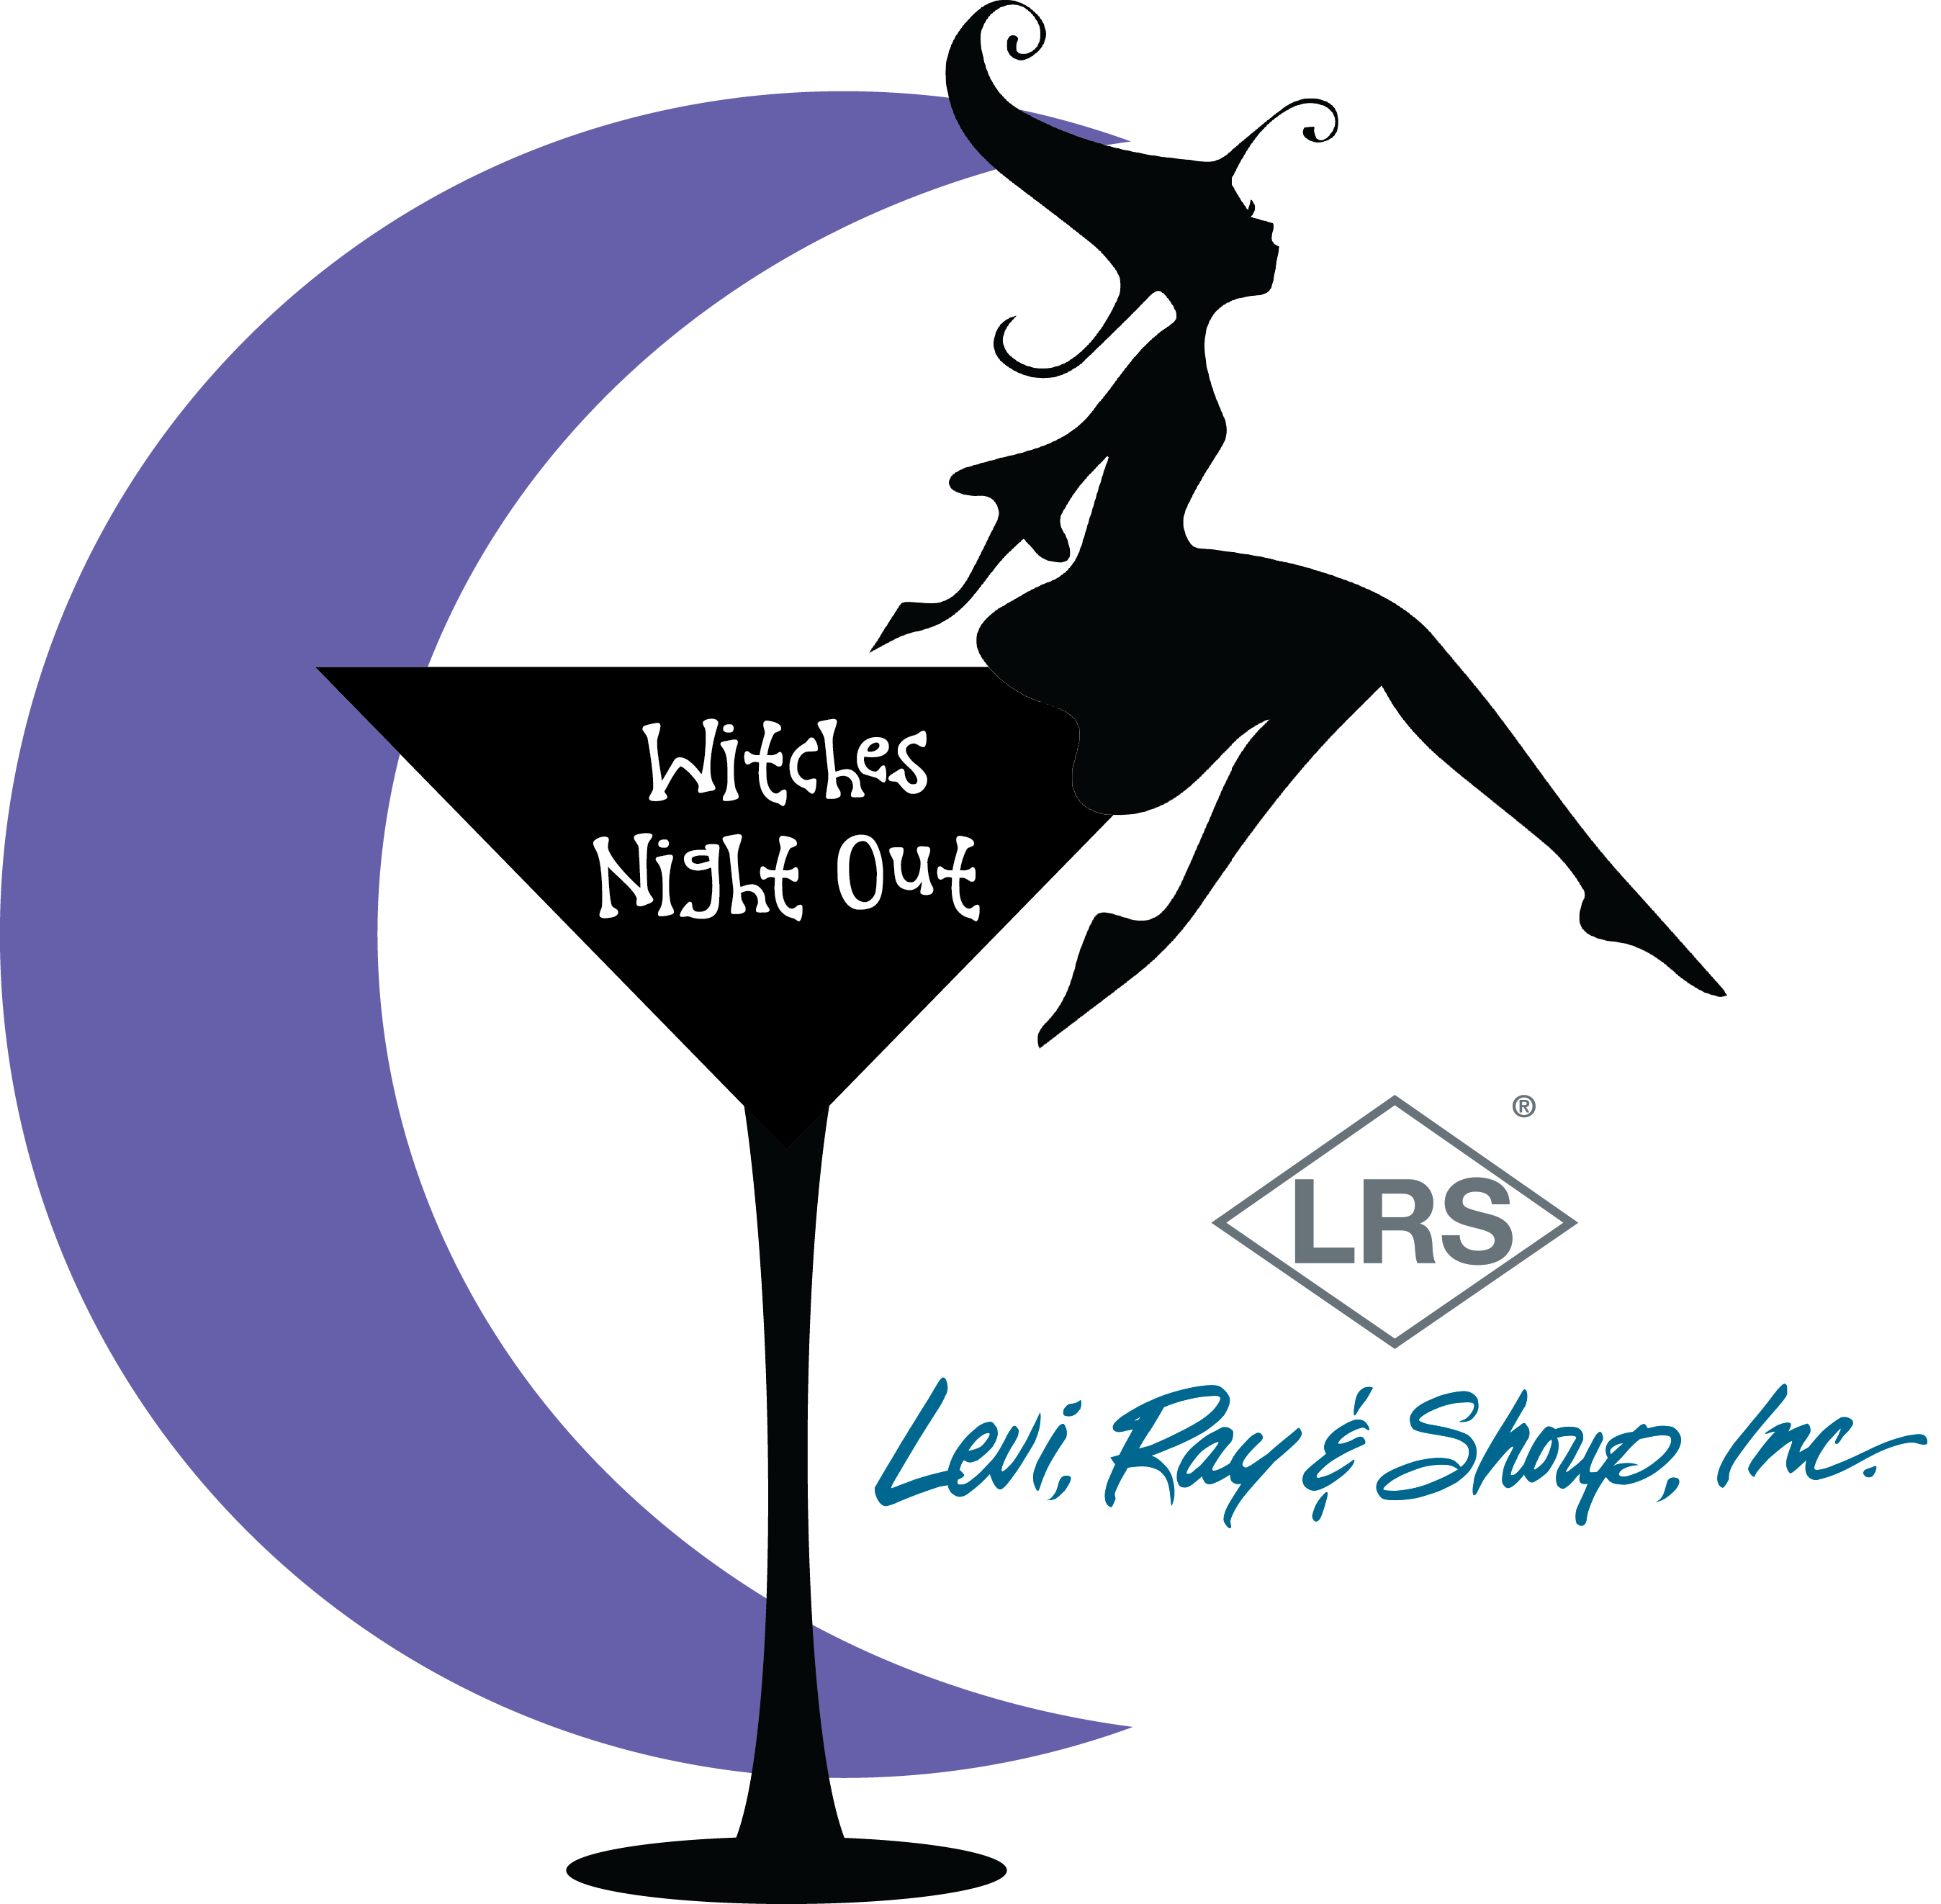 Raffle clipart ticket out the door. Grand prize witches night